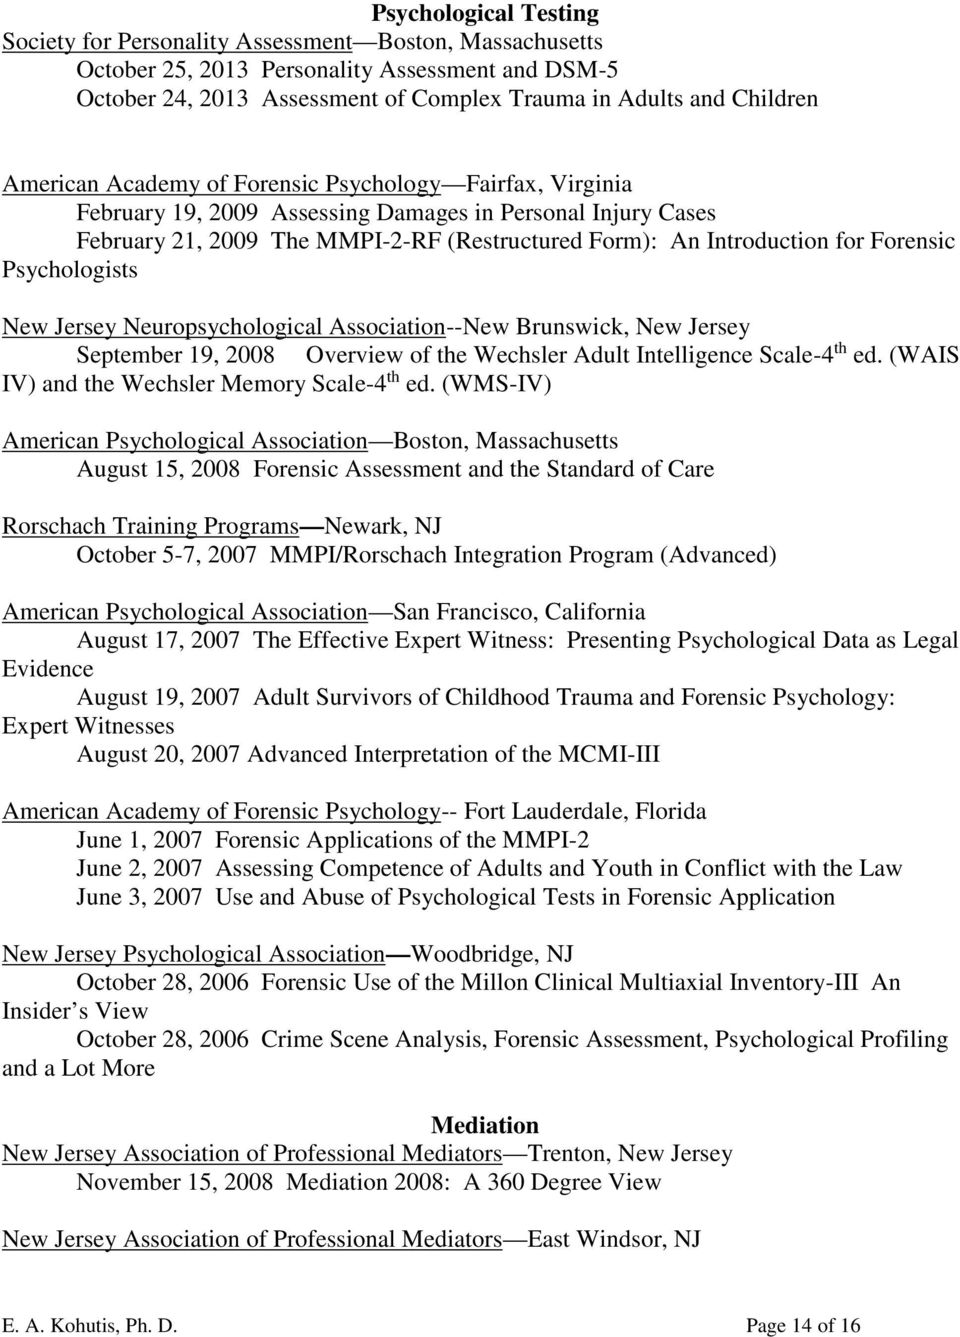 Forensic Psychologists New Jersey Neuropsychological Association--New Brunswick, New Jersey September 19, 2008 Overview of the Wechsler Adult Intelligence Scale-4 th ed.